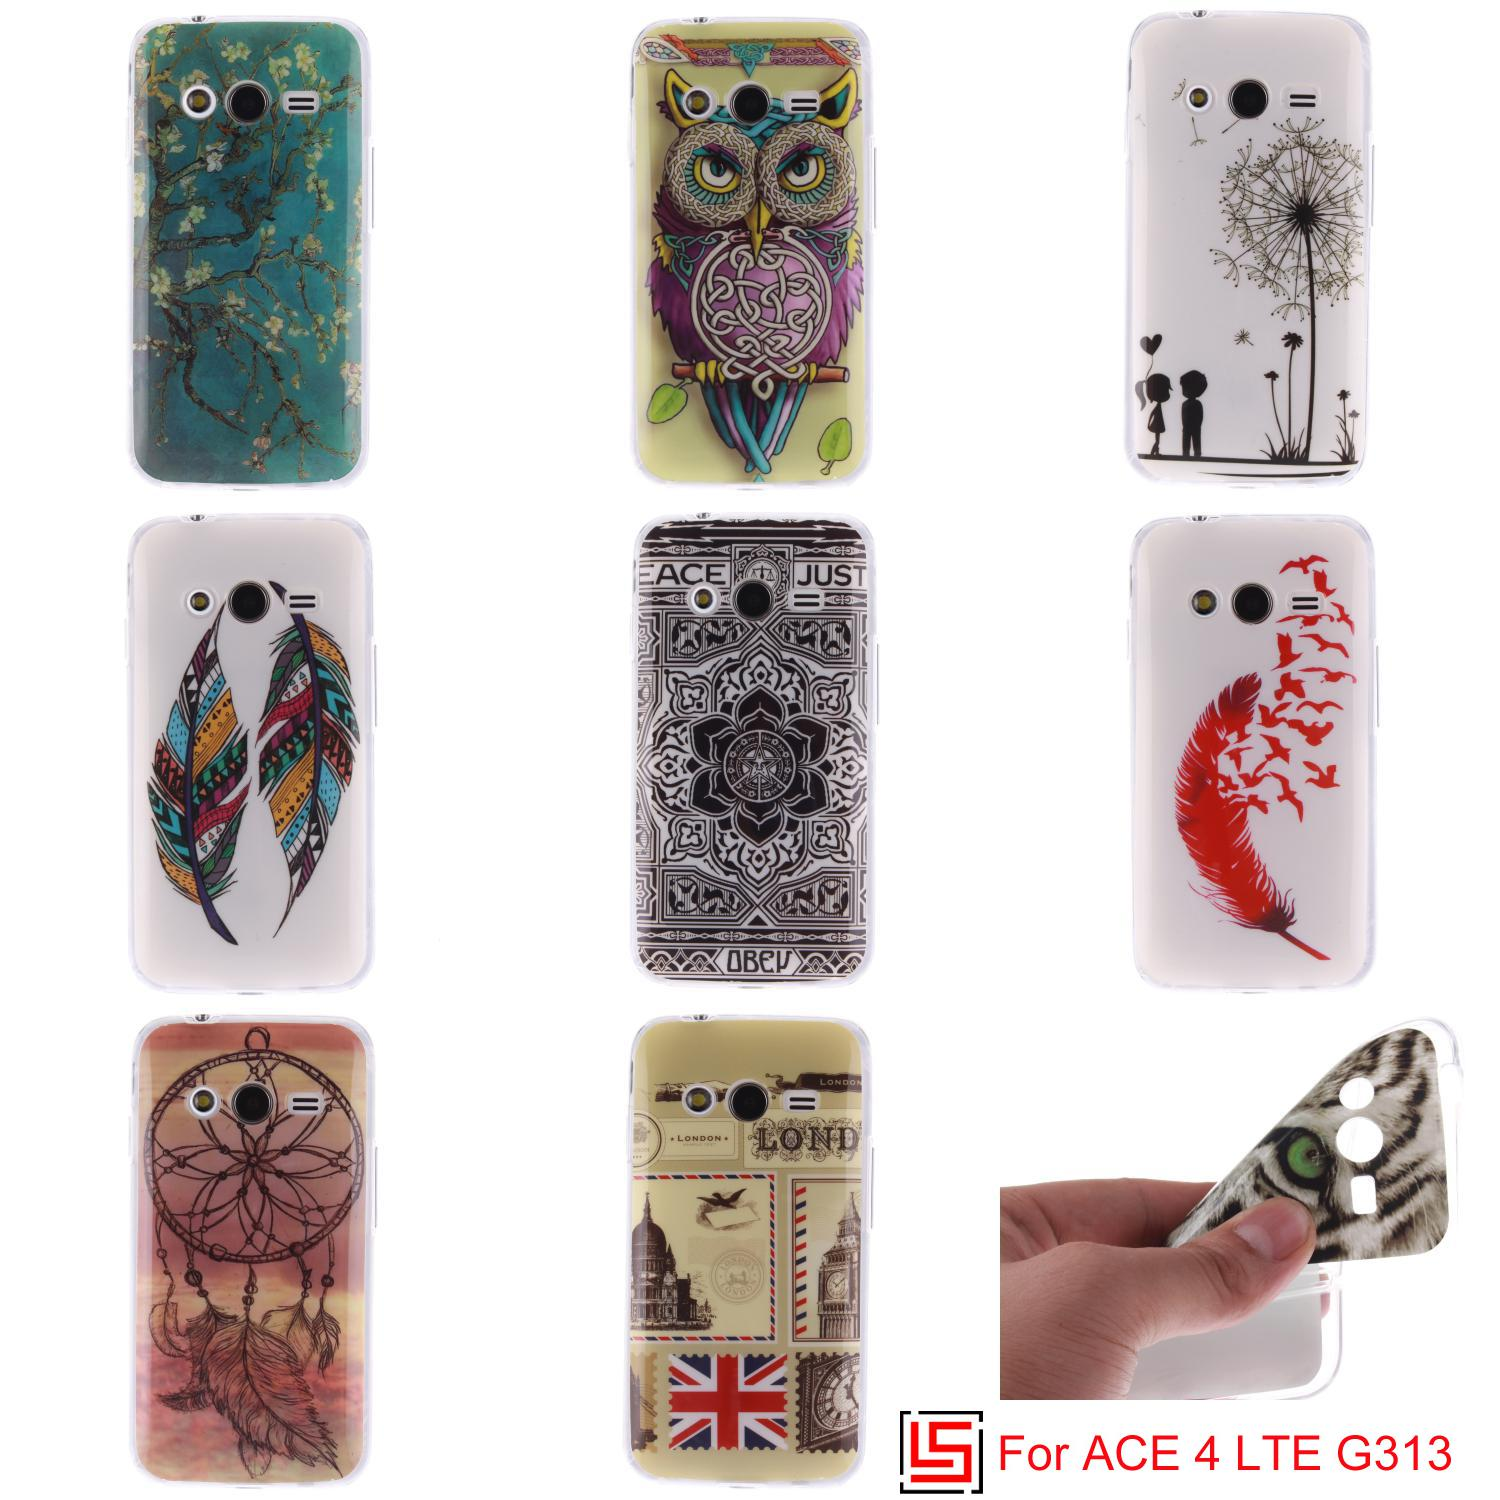 Fashion Ultra Thin TPU Silicone Soft Phone Cell Mobile Case etui carcasa Cover For Samsung Galaxy ACE 4 LTE G313H G 313 SM-G313(China (Mainland))